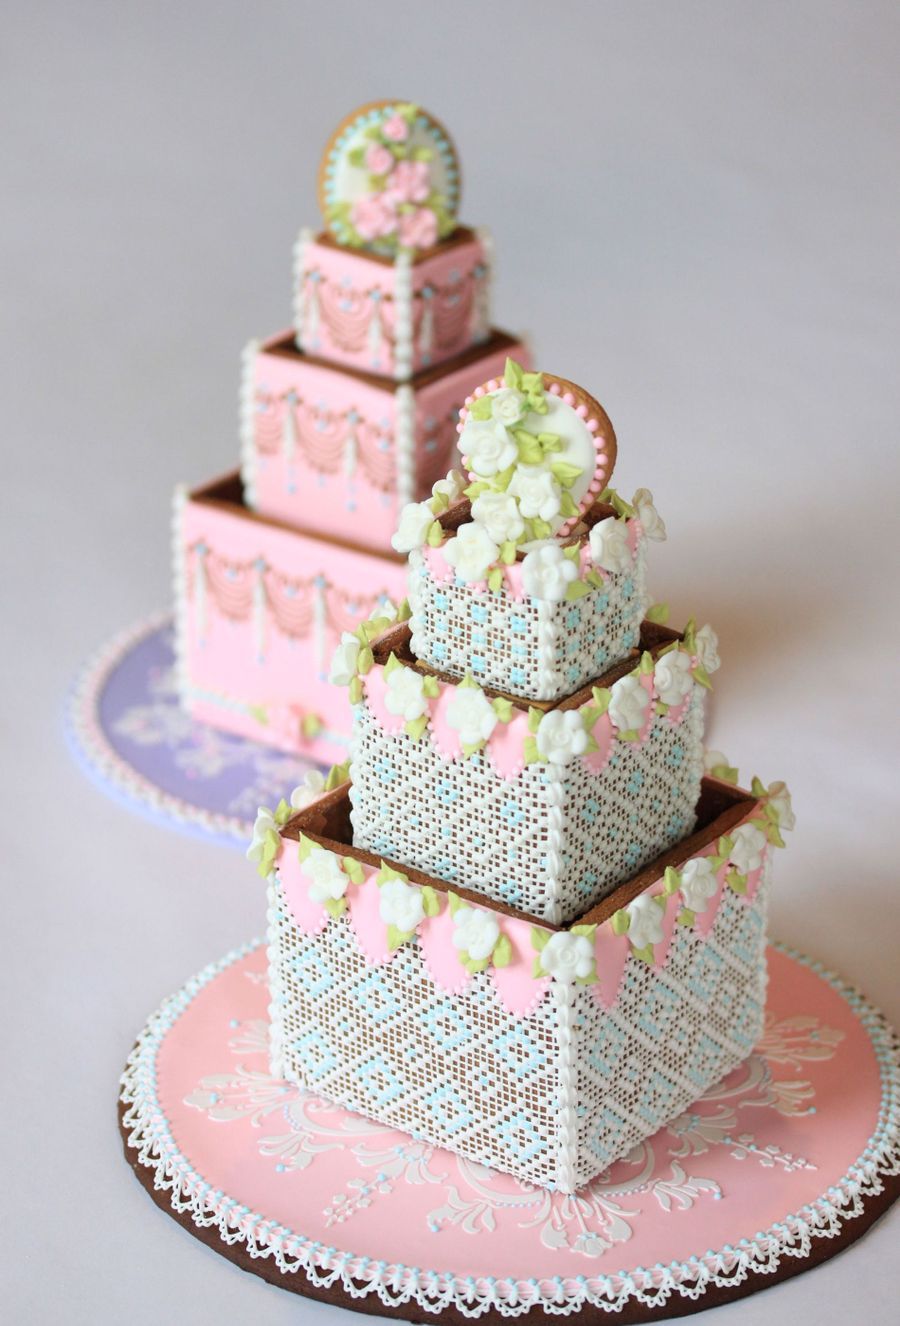 Cookie Wedding Cake In Needlepoint Style on Cake Central